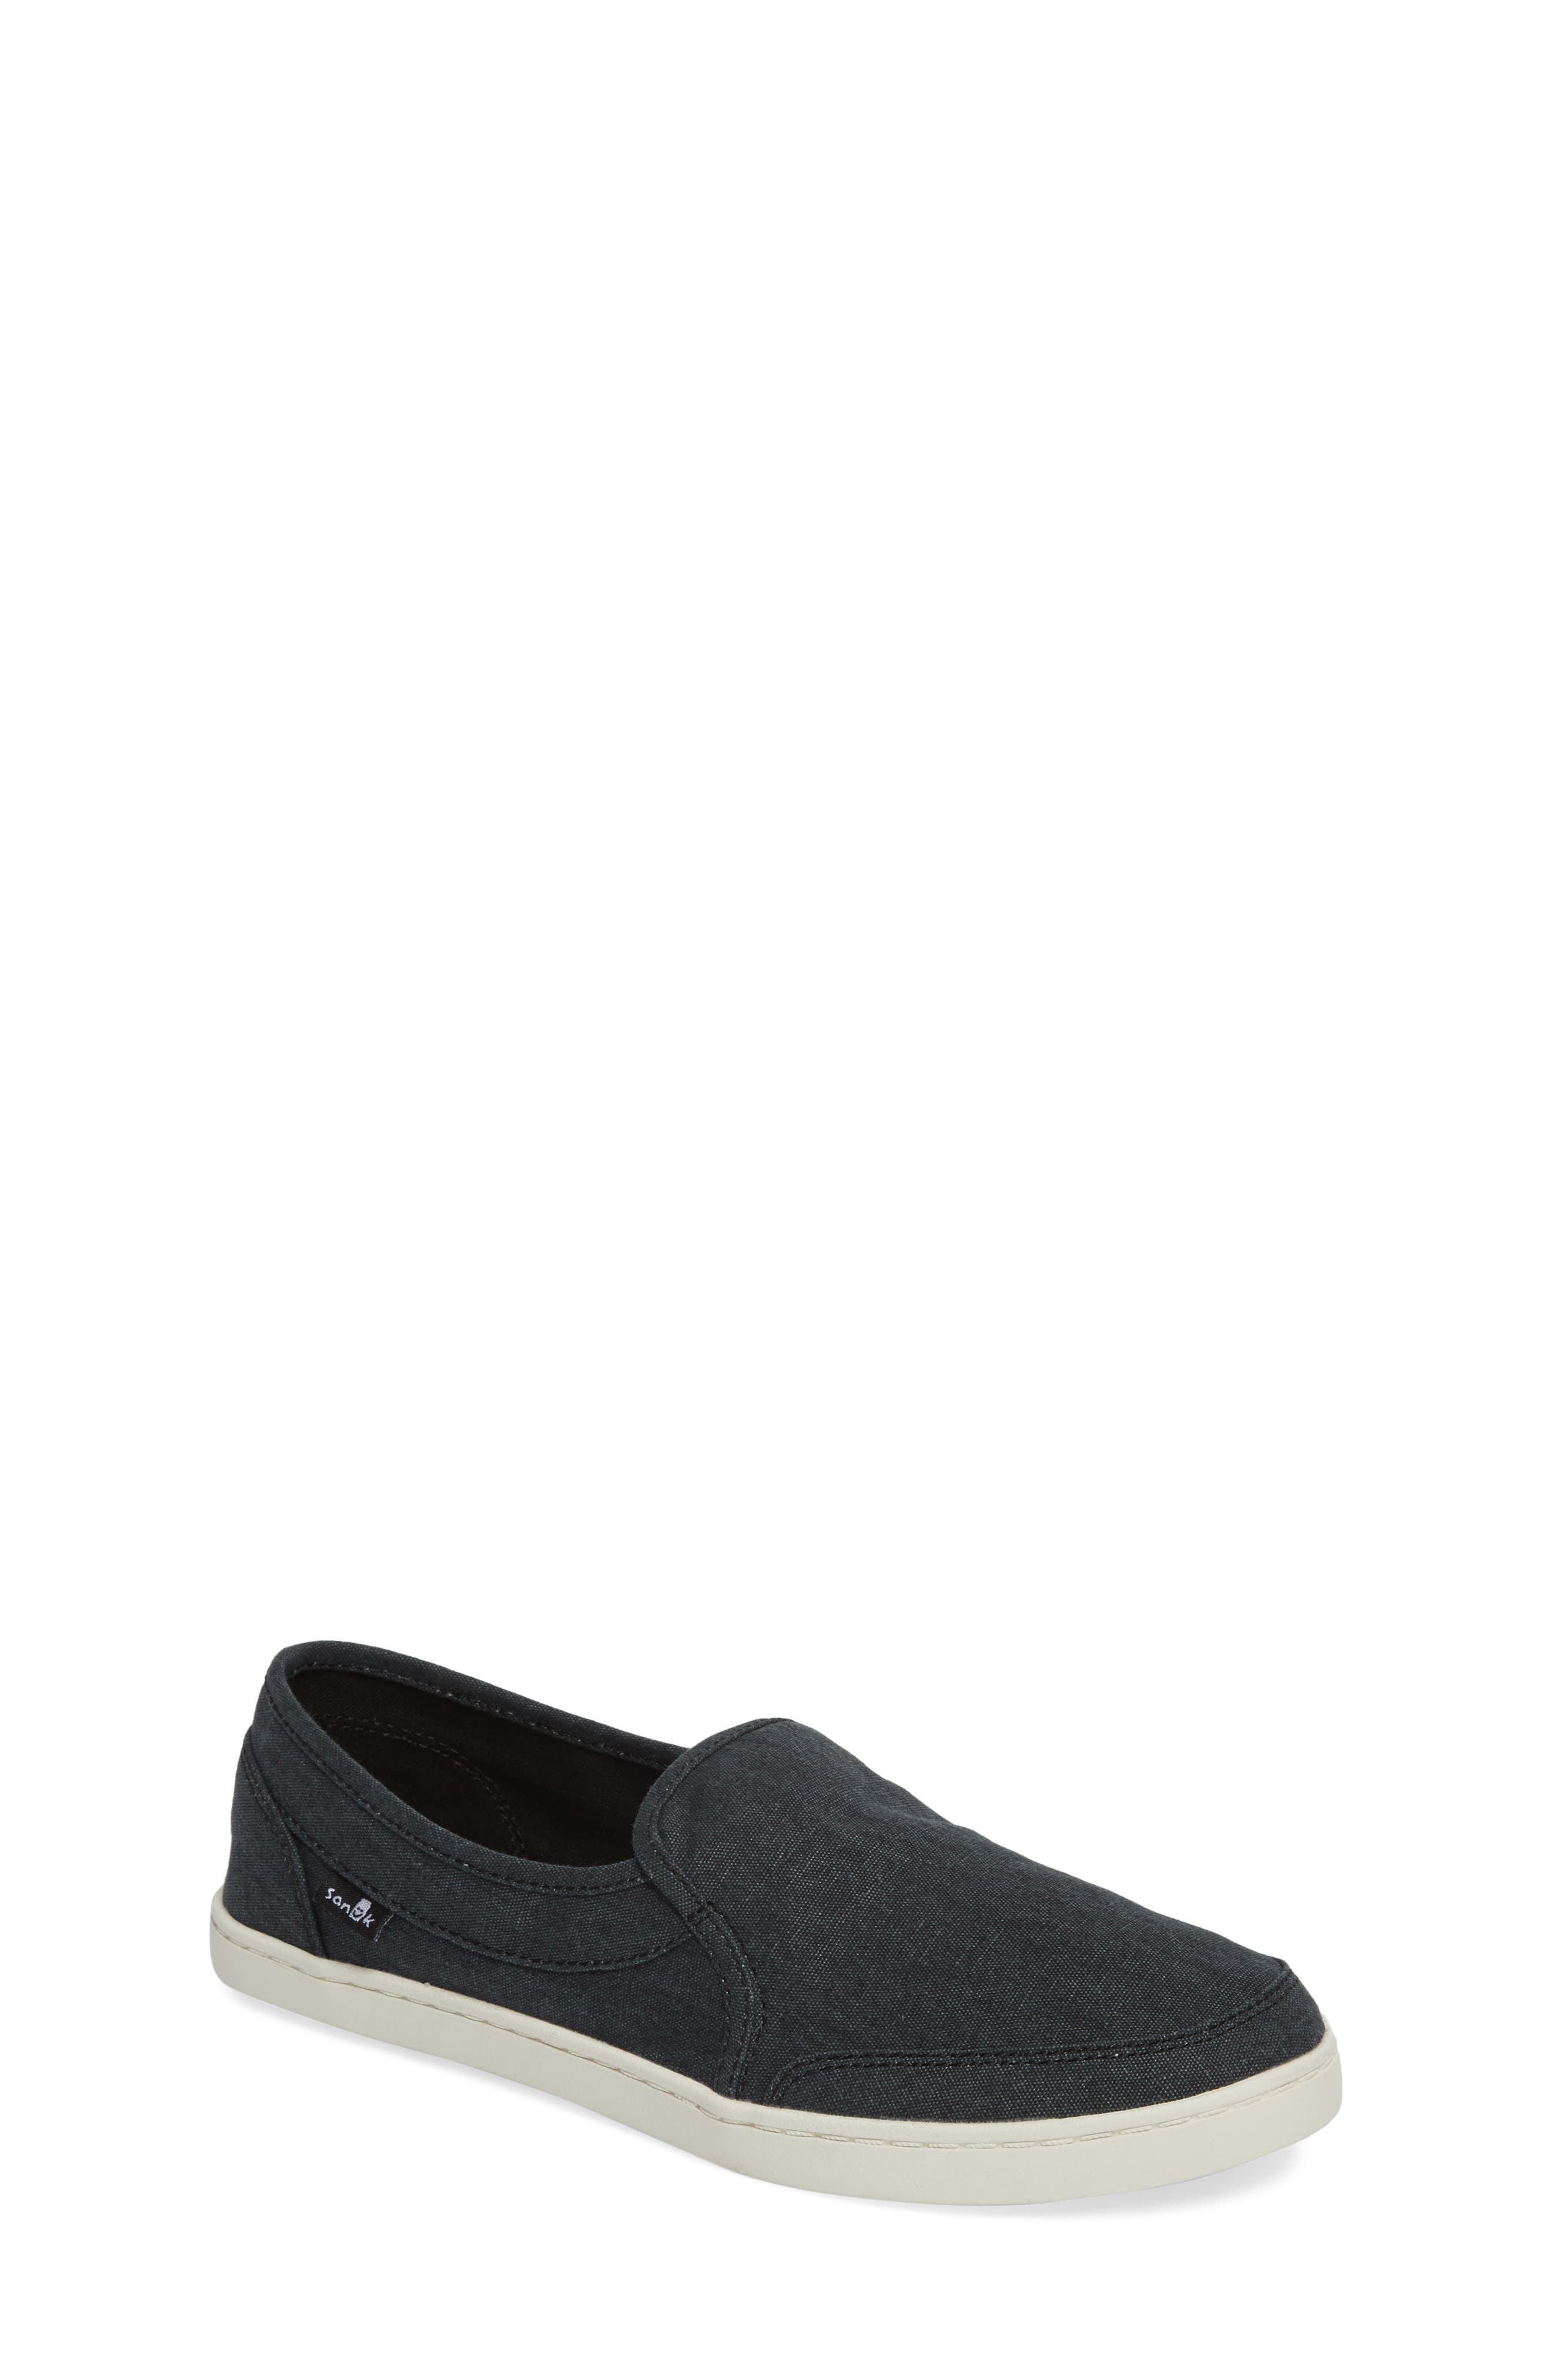 Pair O Dice Slip-On,                         Main,                         color, 001